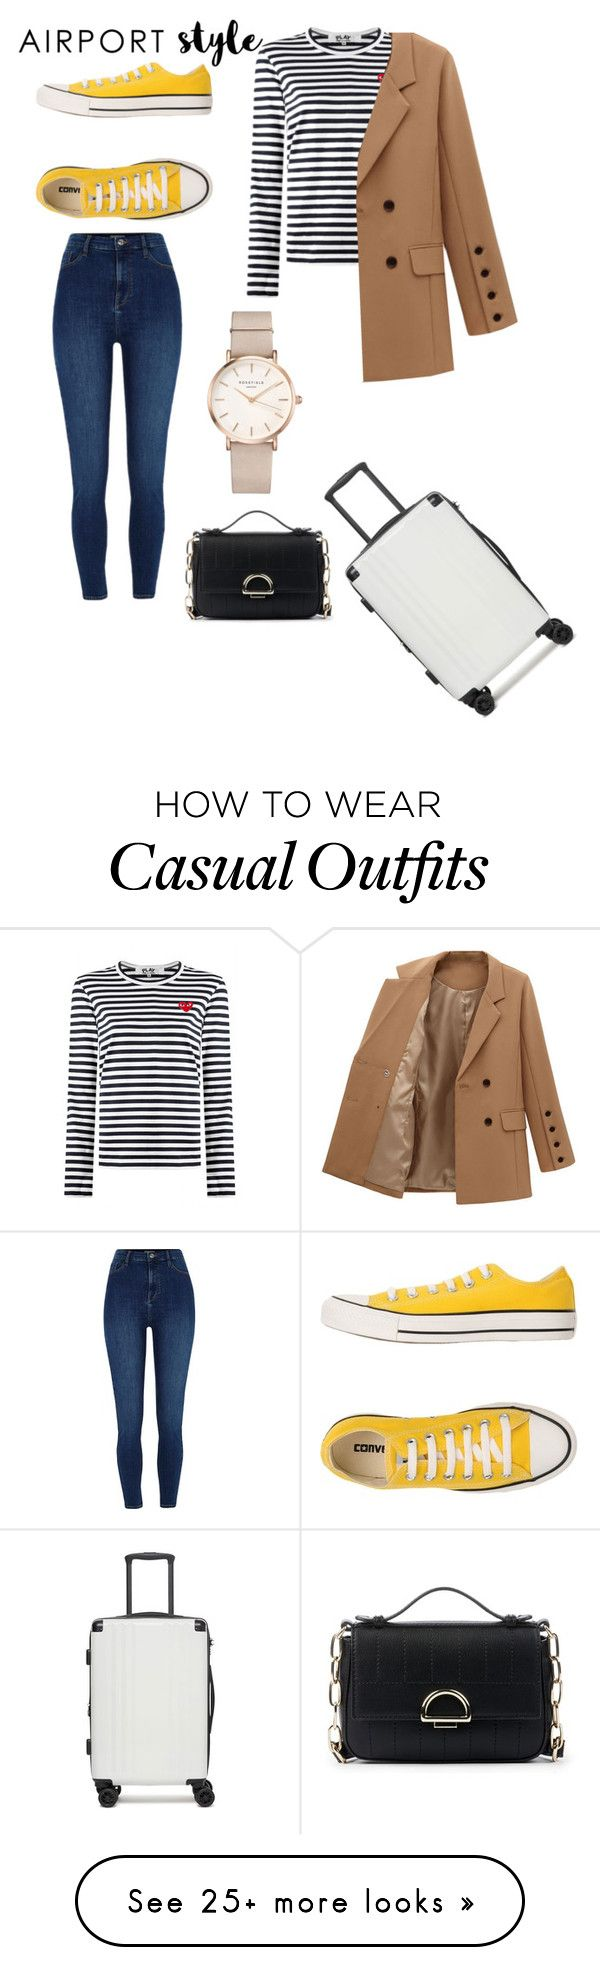 """""""Untitled #167"""" by spacegirl-1 on Polyvore featuring CalPak, River Island, Converse, ROSEFIELD, Sole Society and airportstyle"""